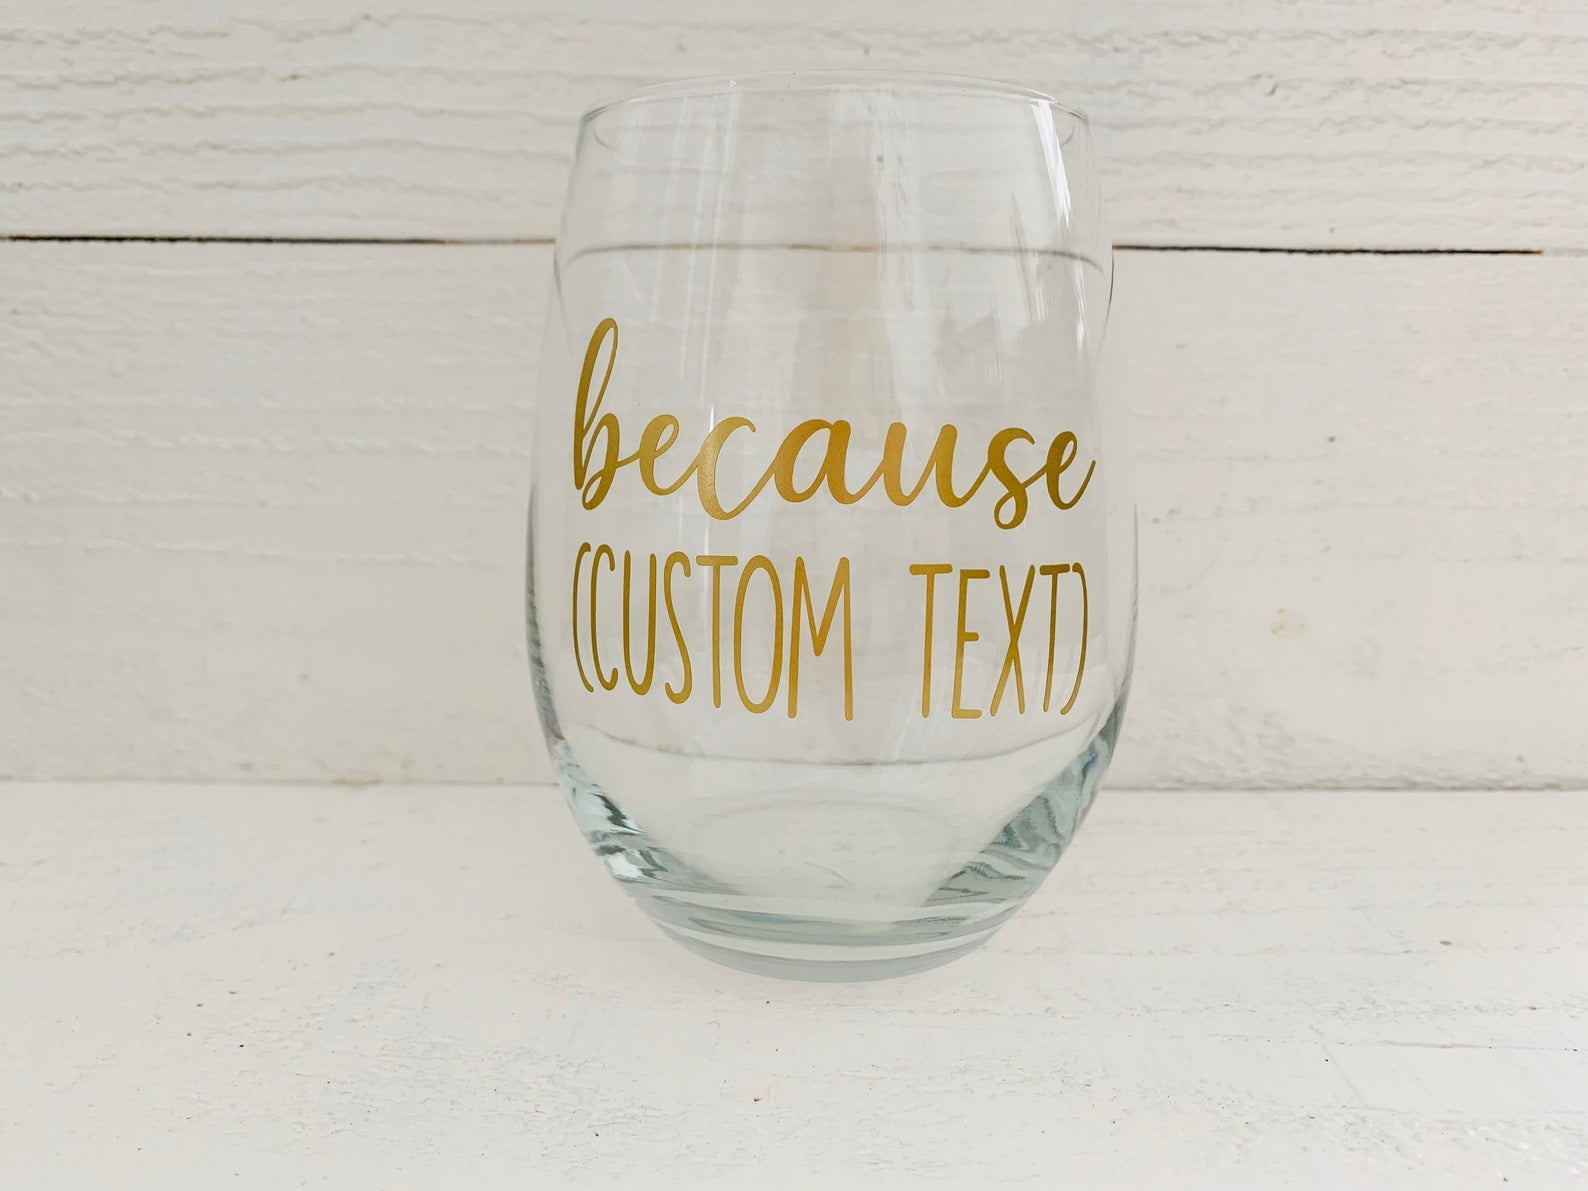 Stemless wine glass that says